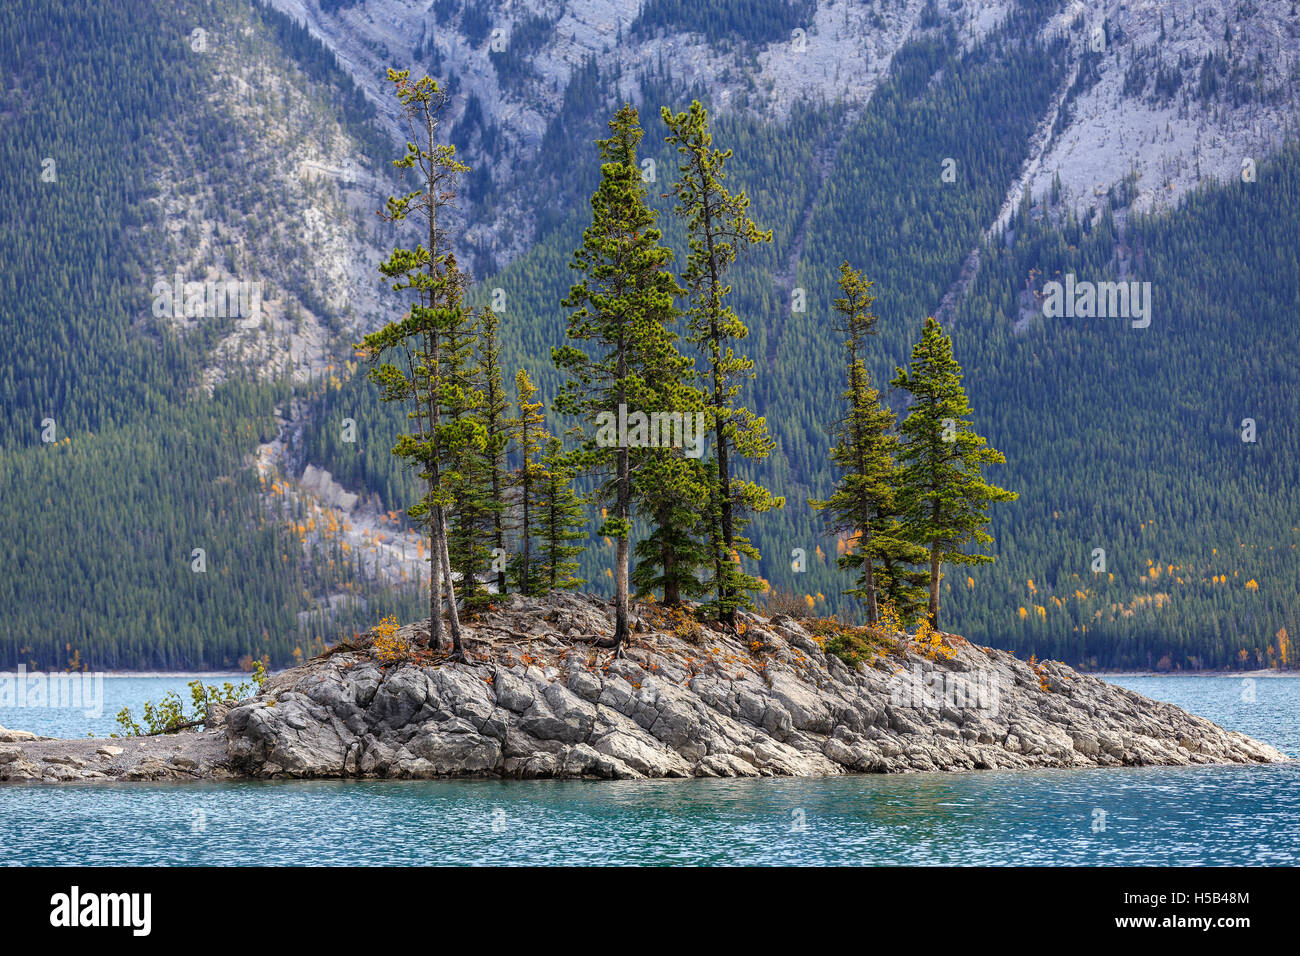 Rocky island on Lake Minnewanka, Banff National Park, Alberta, Canada. - Stock Image